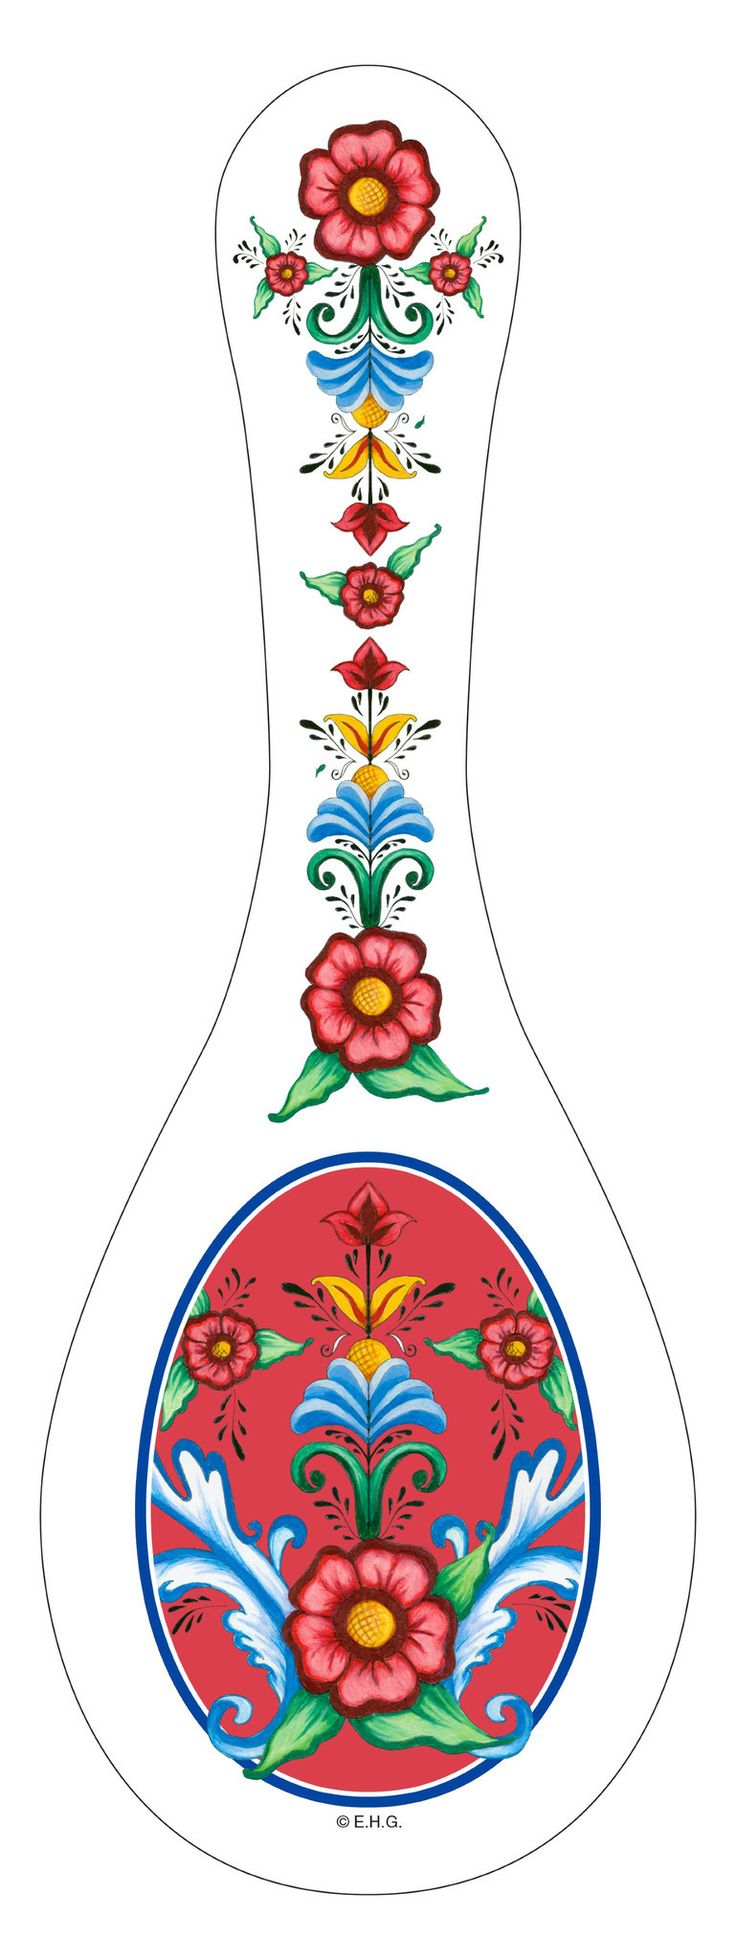 The perfect European gift to accent your kitchen. This ceramic spoon rest features an attractive and exclusive artwork of Rosemaling and Flowers. - The perfect European gift to accent your kitchen - S